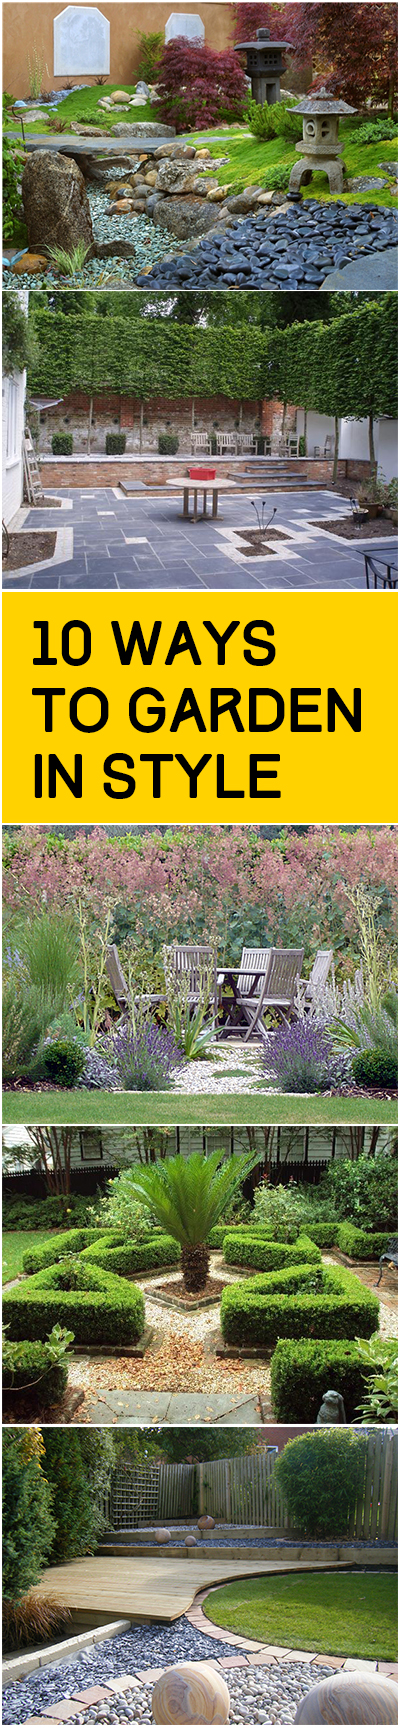 10 Ways to Garden in Style